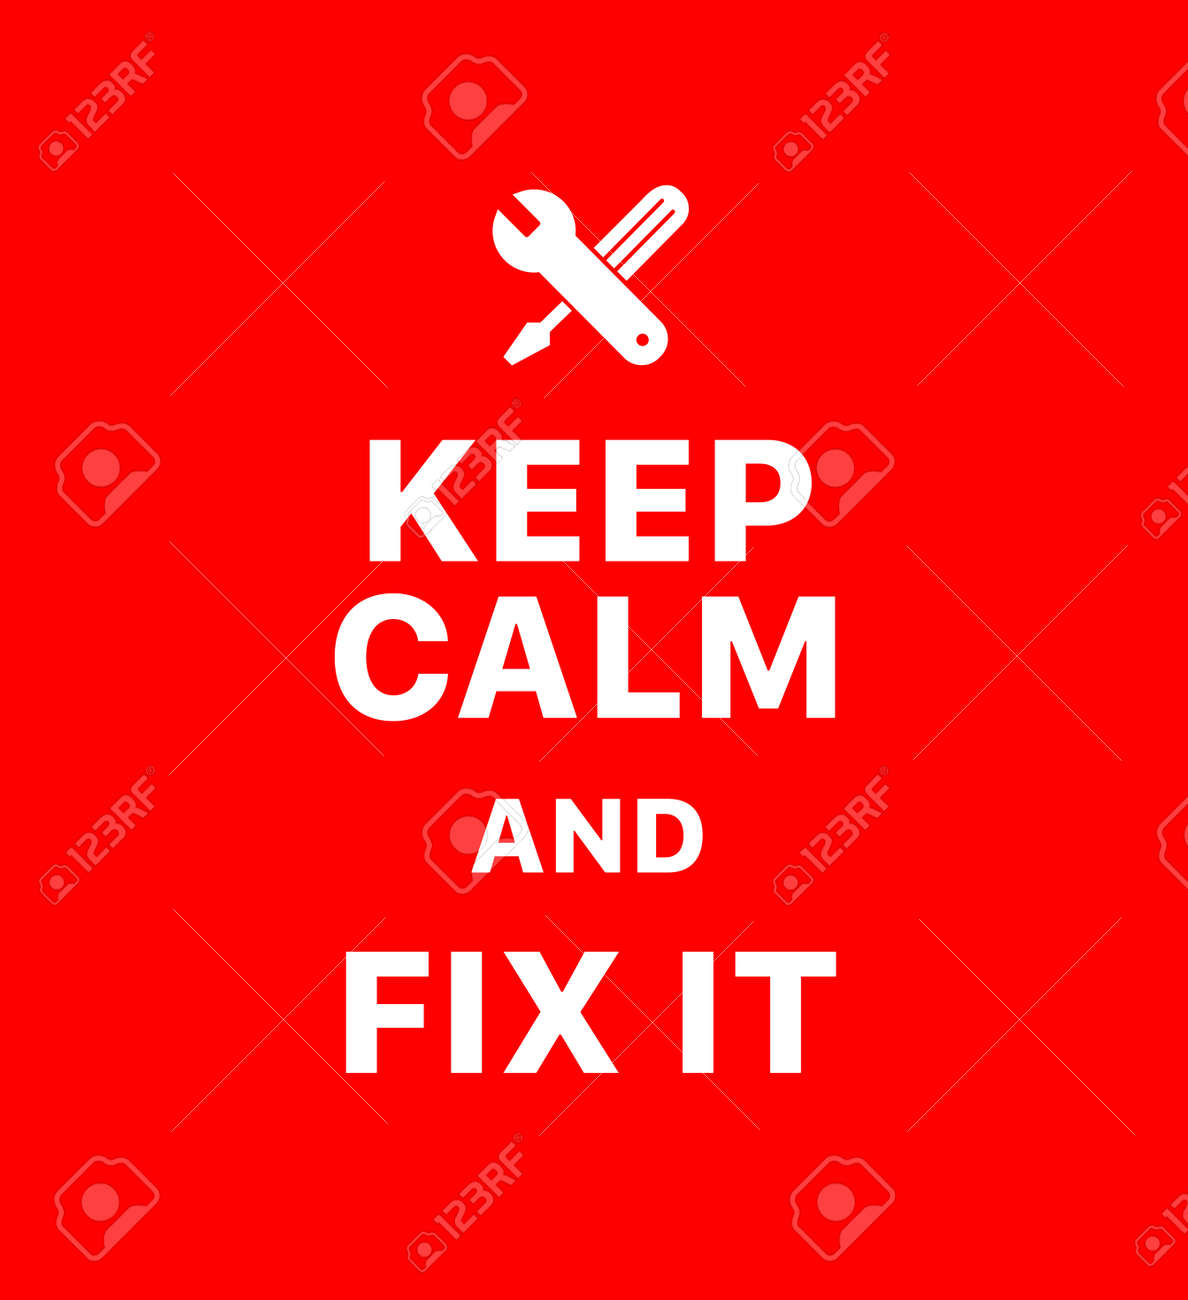 Keep calm and fix it. Creative poster concept. Typography poster. Card of invitation. Motivation. Modern lettering inspirational quote isolated on red background - 128619189